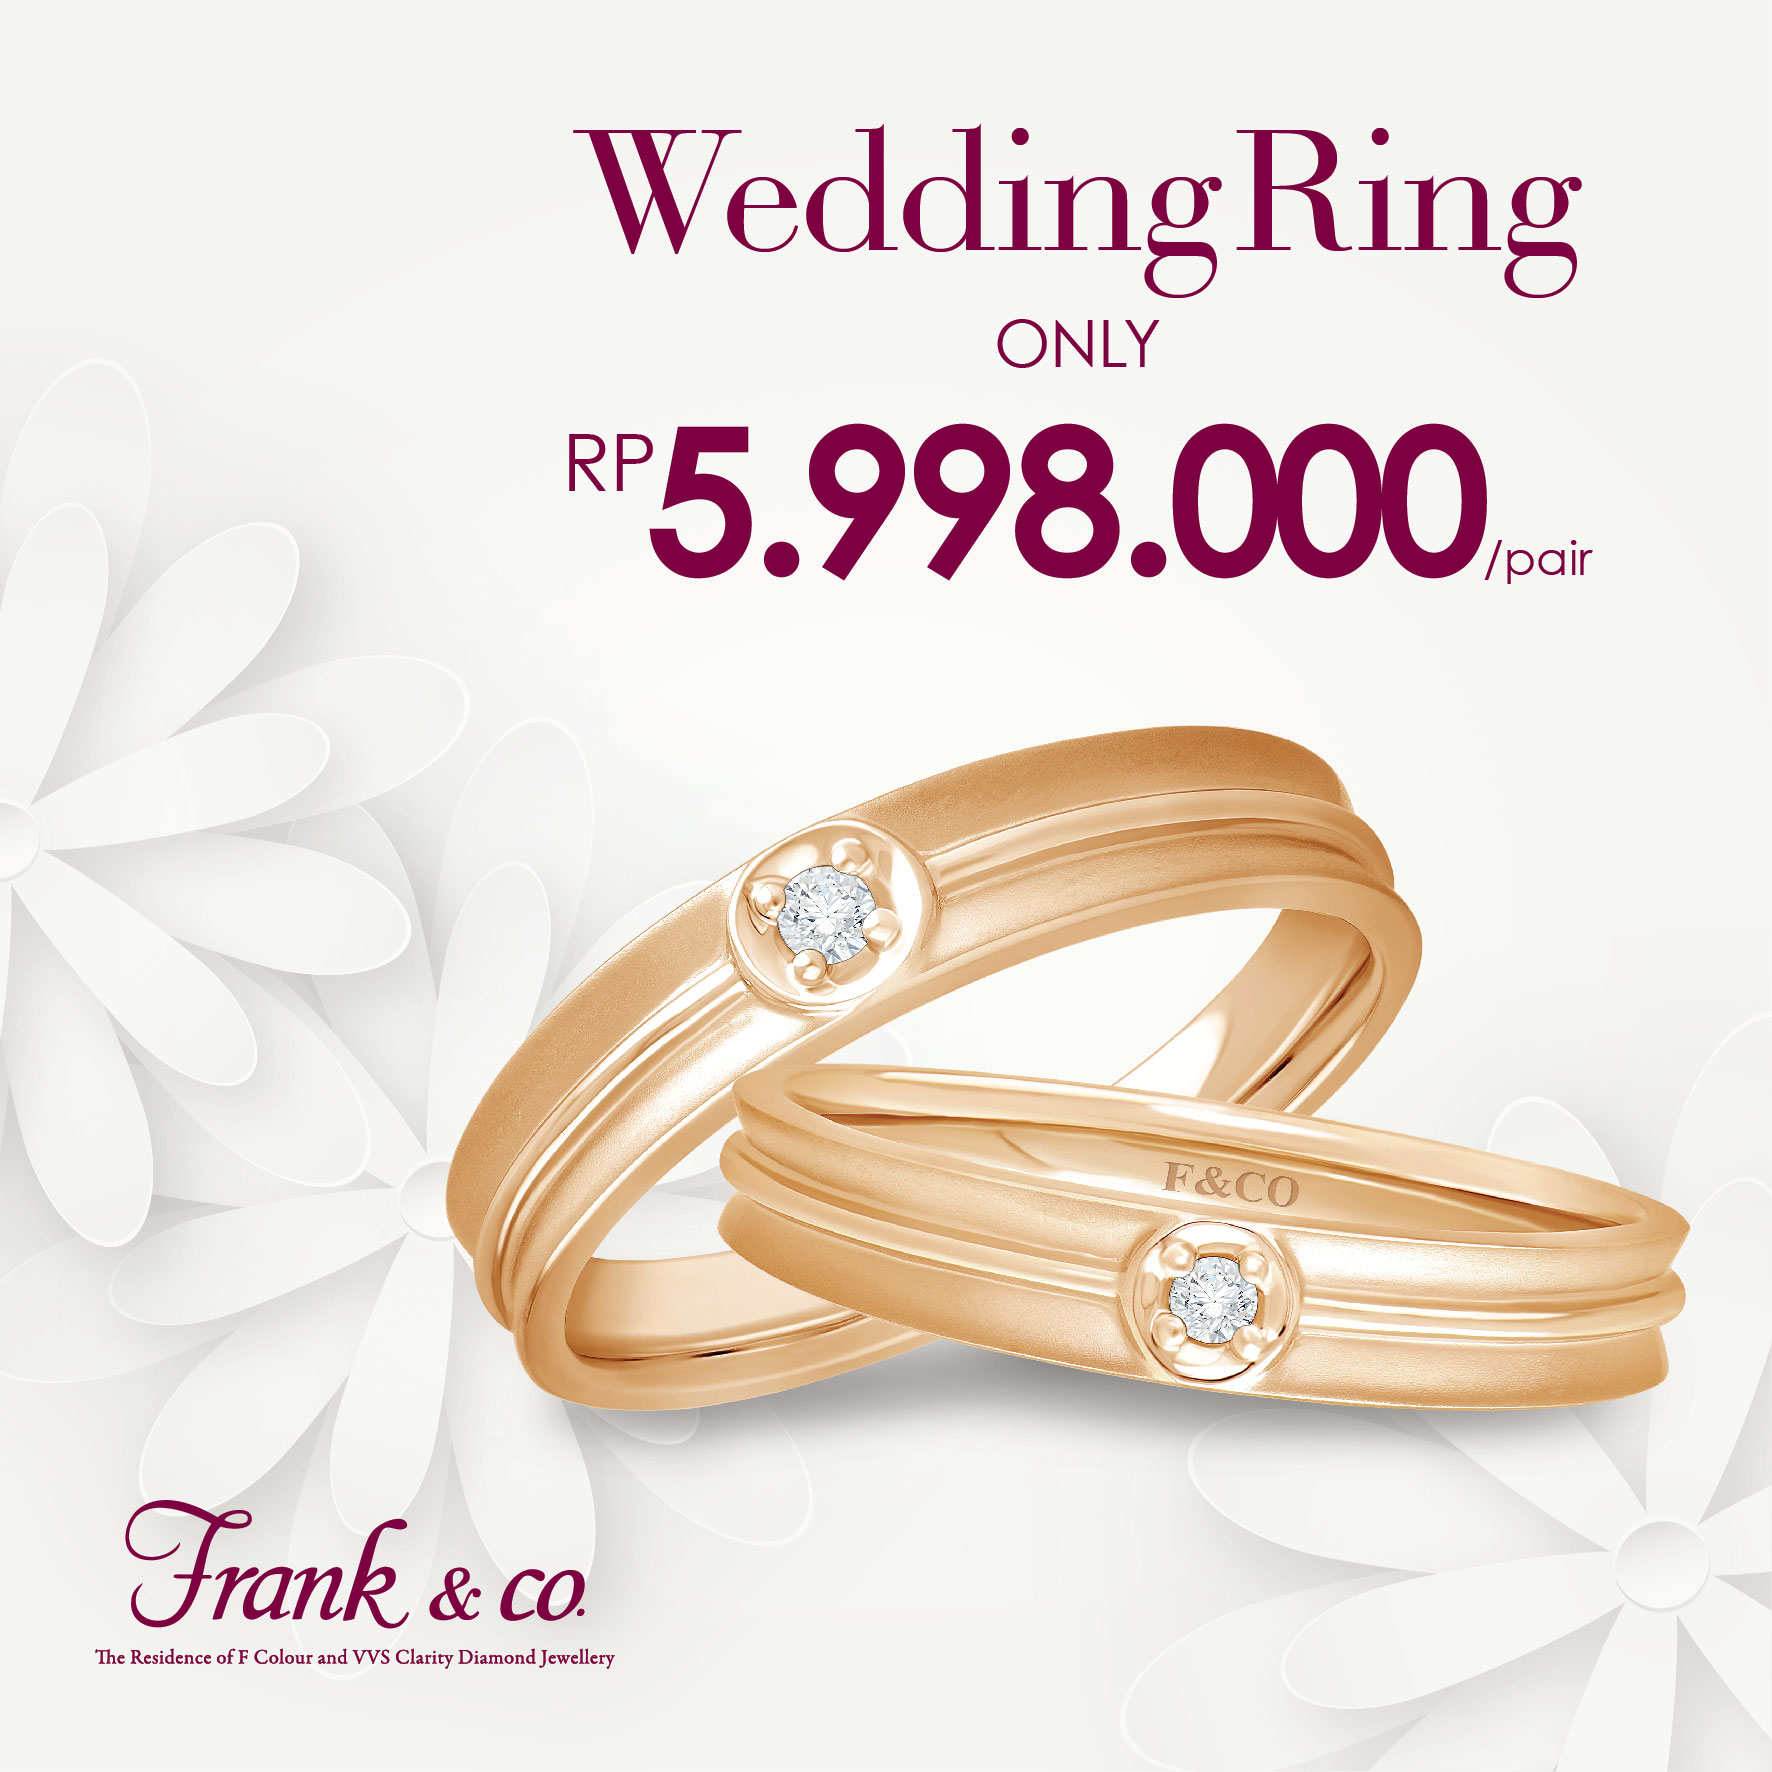 Wedding Ring Special Price By Frank Co